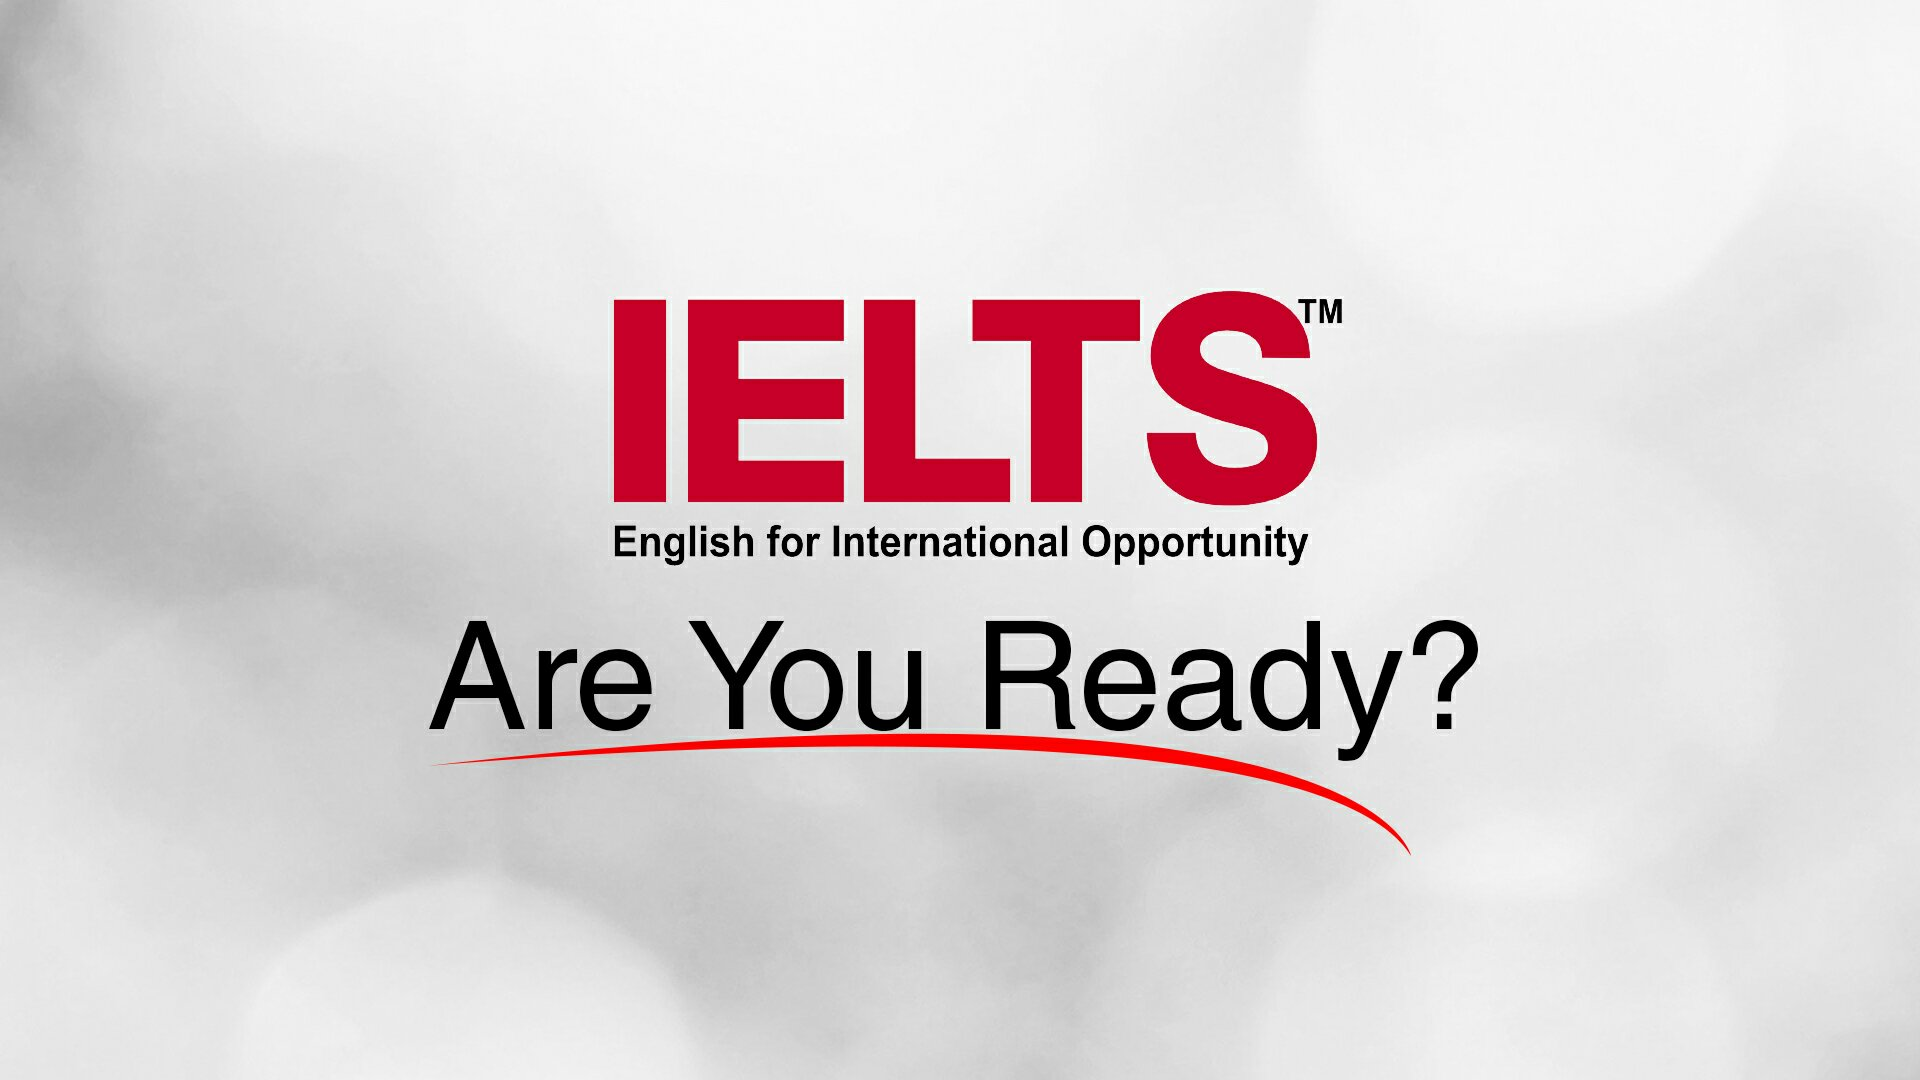 ielts-are-you-ready1.